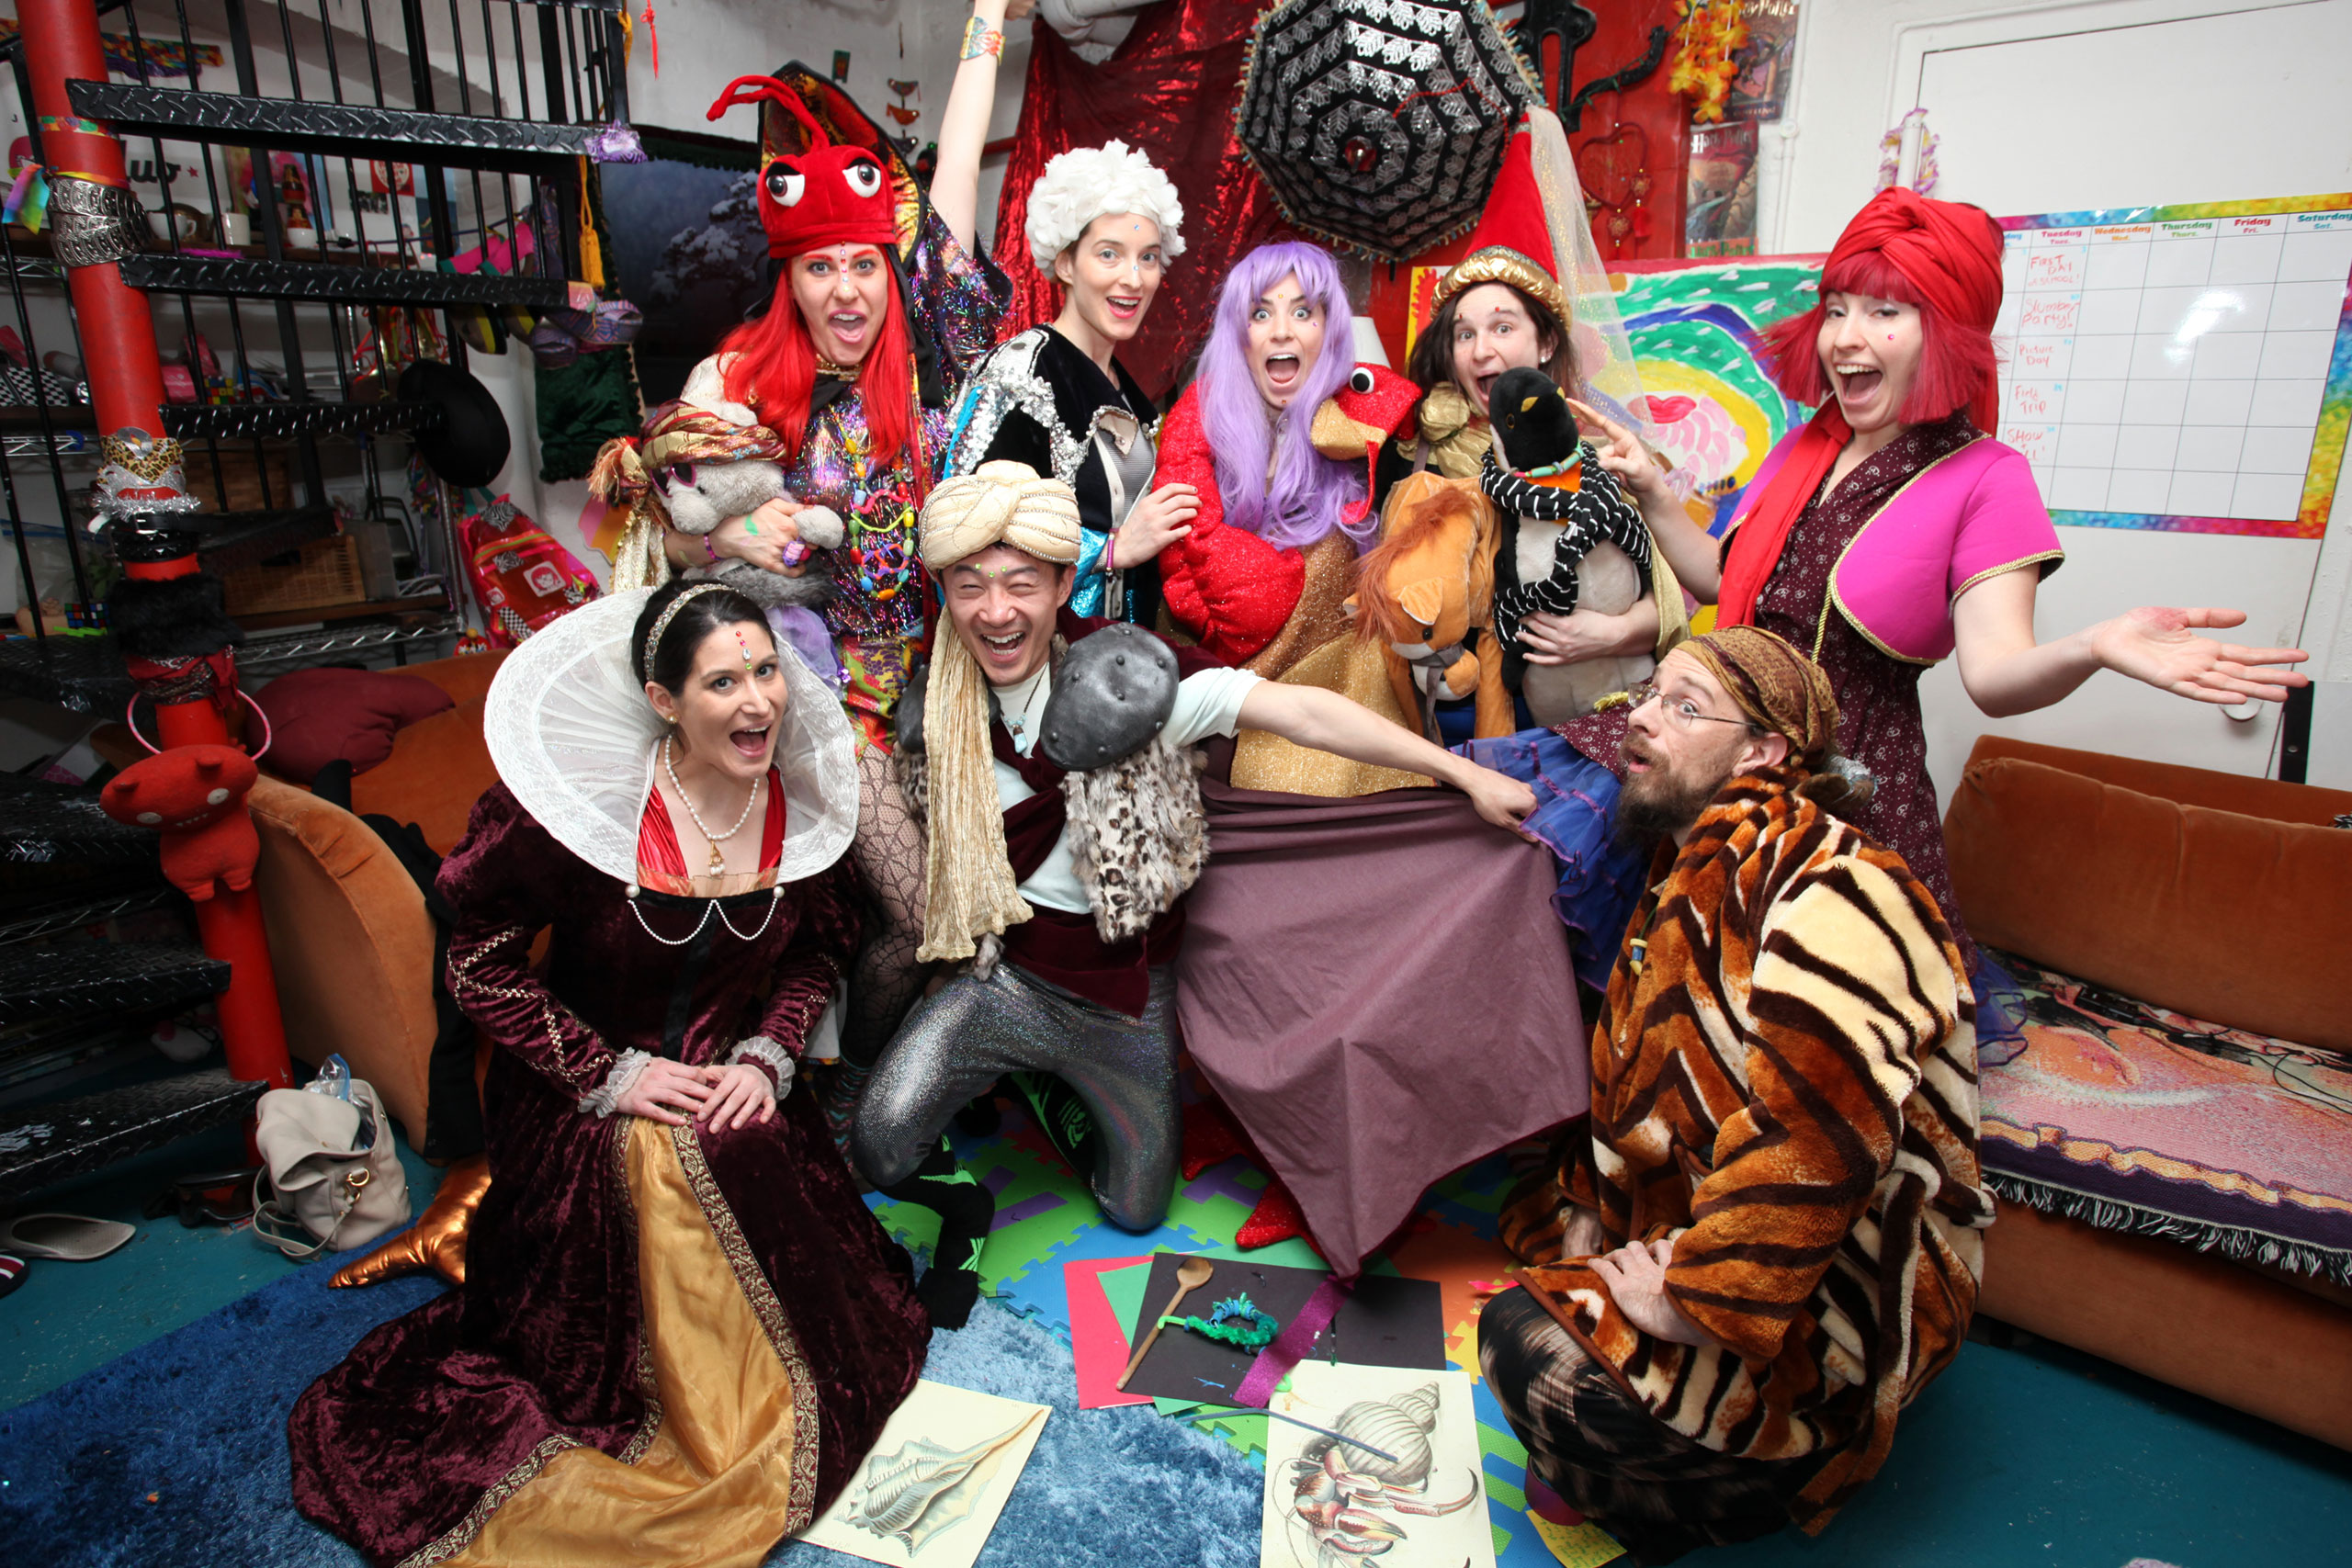 Students of the Adult Pre School take part in dressing up on March 10, 2015 in Brooklyn, New York City.